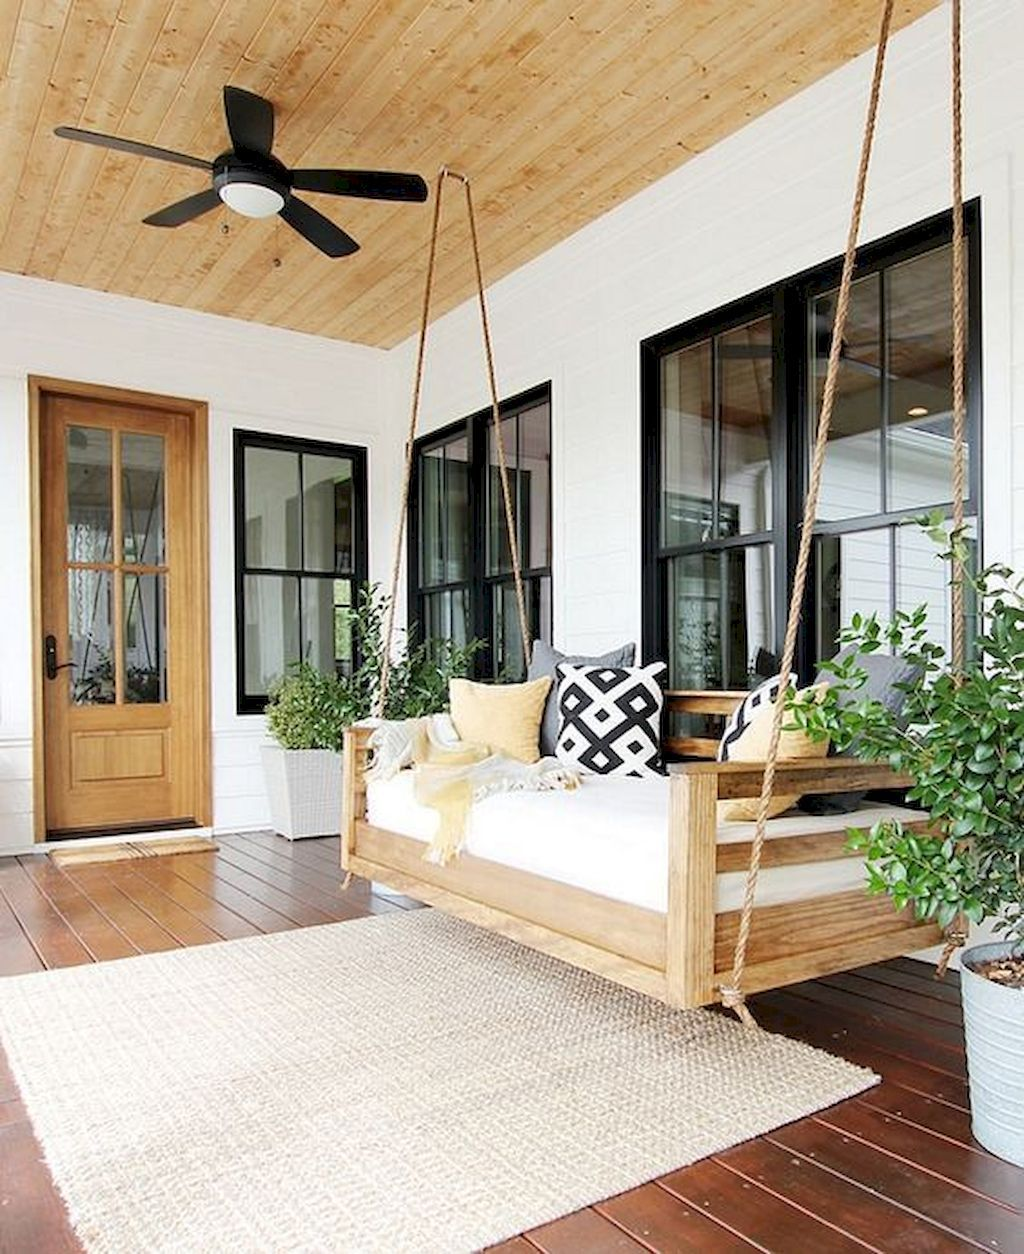 45 Most Popular Home Exterior Front Porch Decor And Design Ideas For Summer House With Porch Diy Porch Swing Bed Building A Porch